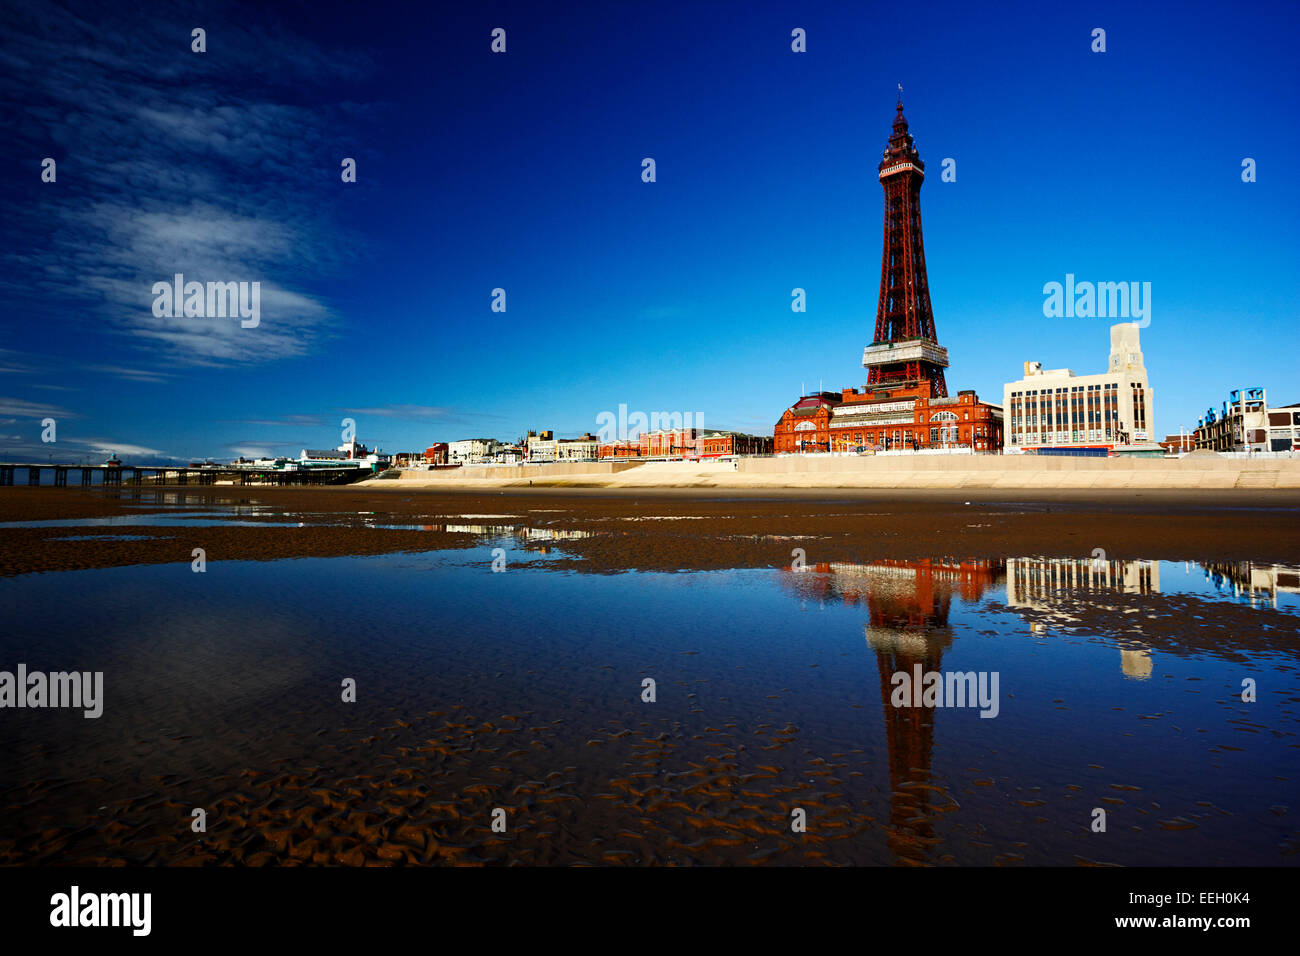 reflection of Blackpool tower and seafront promenade in pool on the beach lancashire england uk - Stock Image